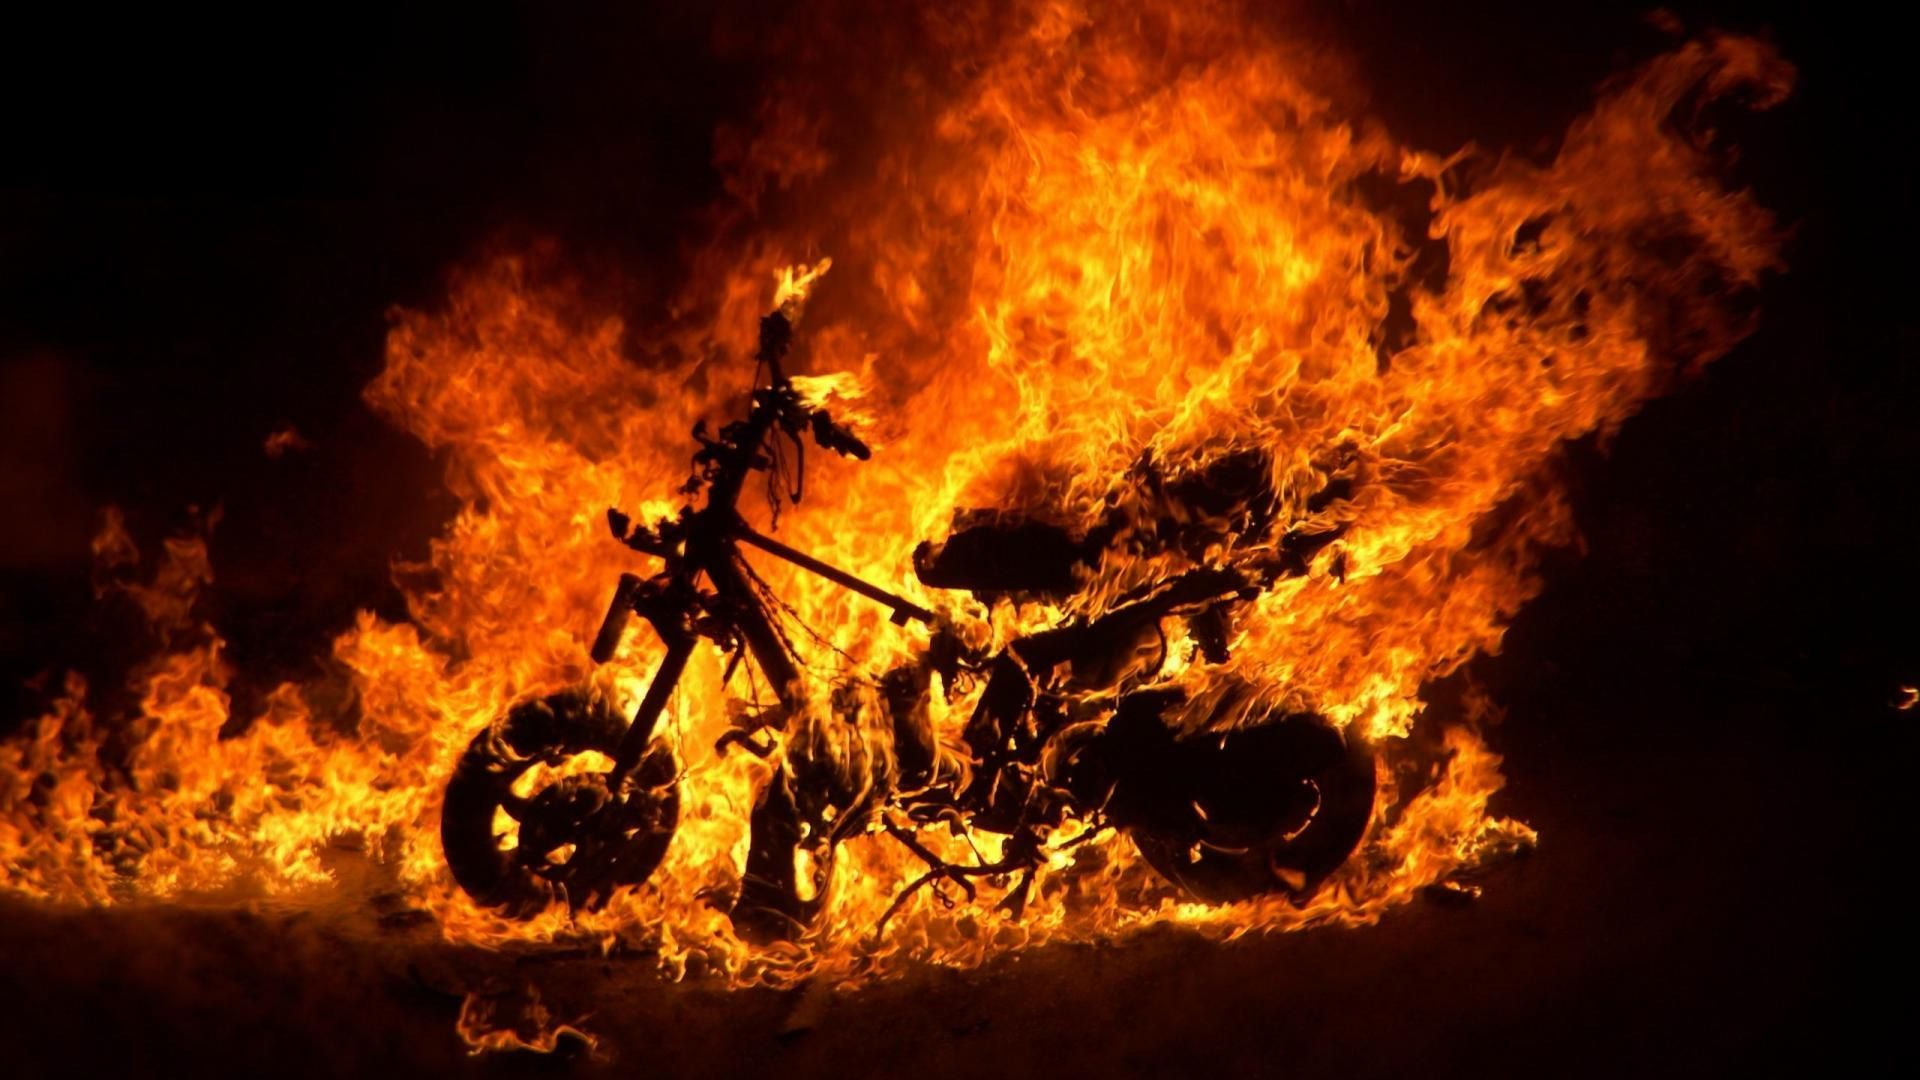 full hd p ghost rider wallpapers hd, desktop backgrounds 1920x1080